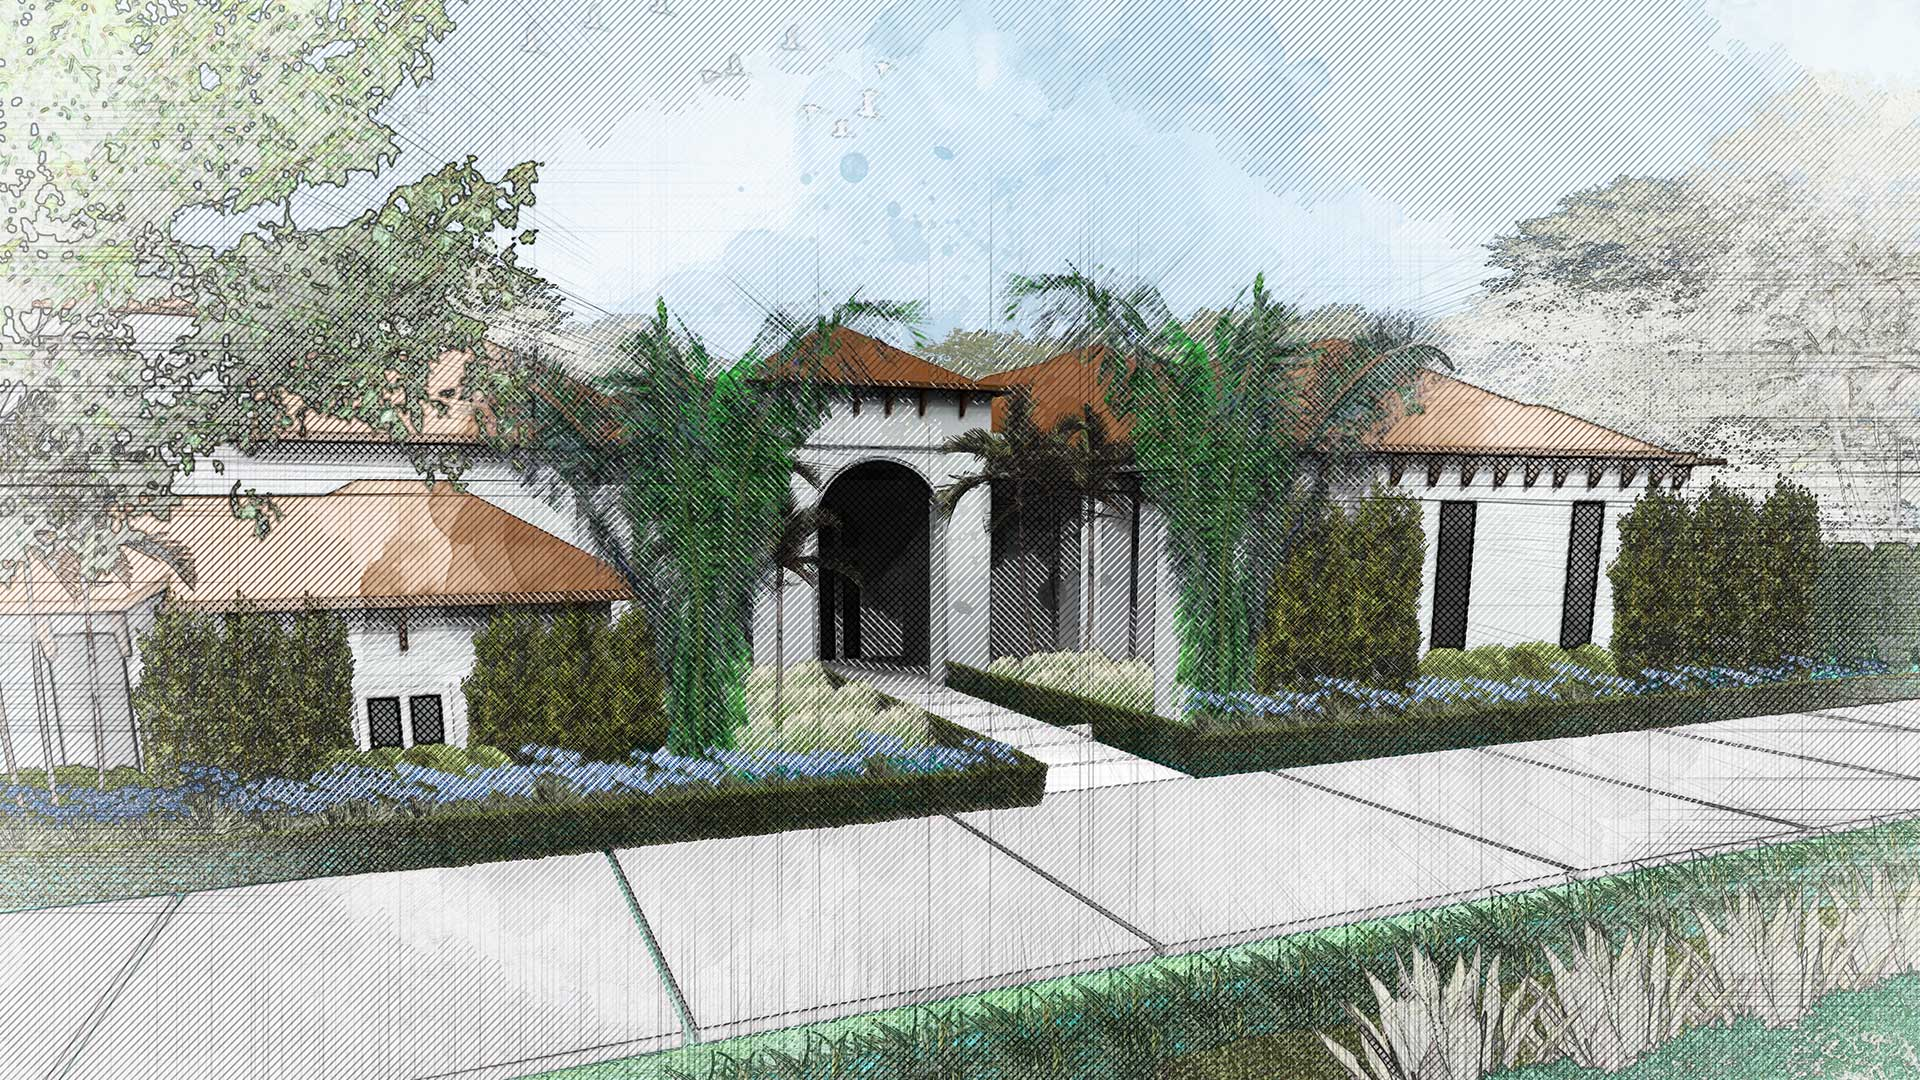 sketching of landscape design showing a house with plants